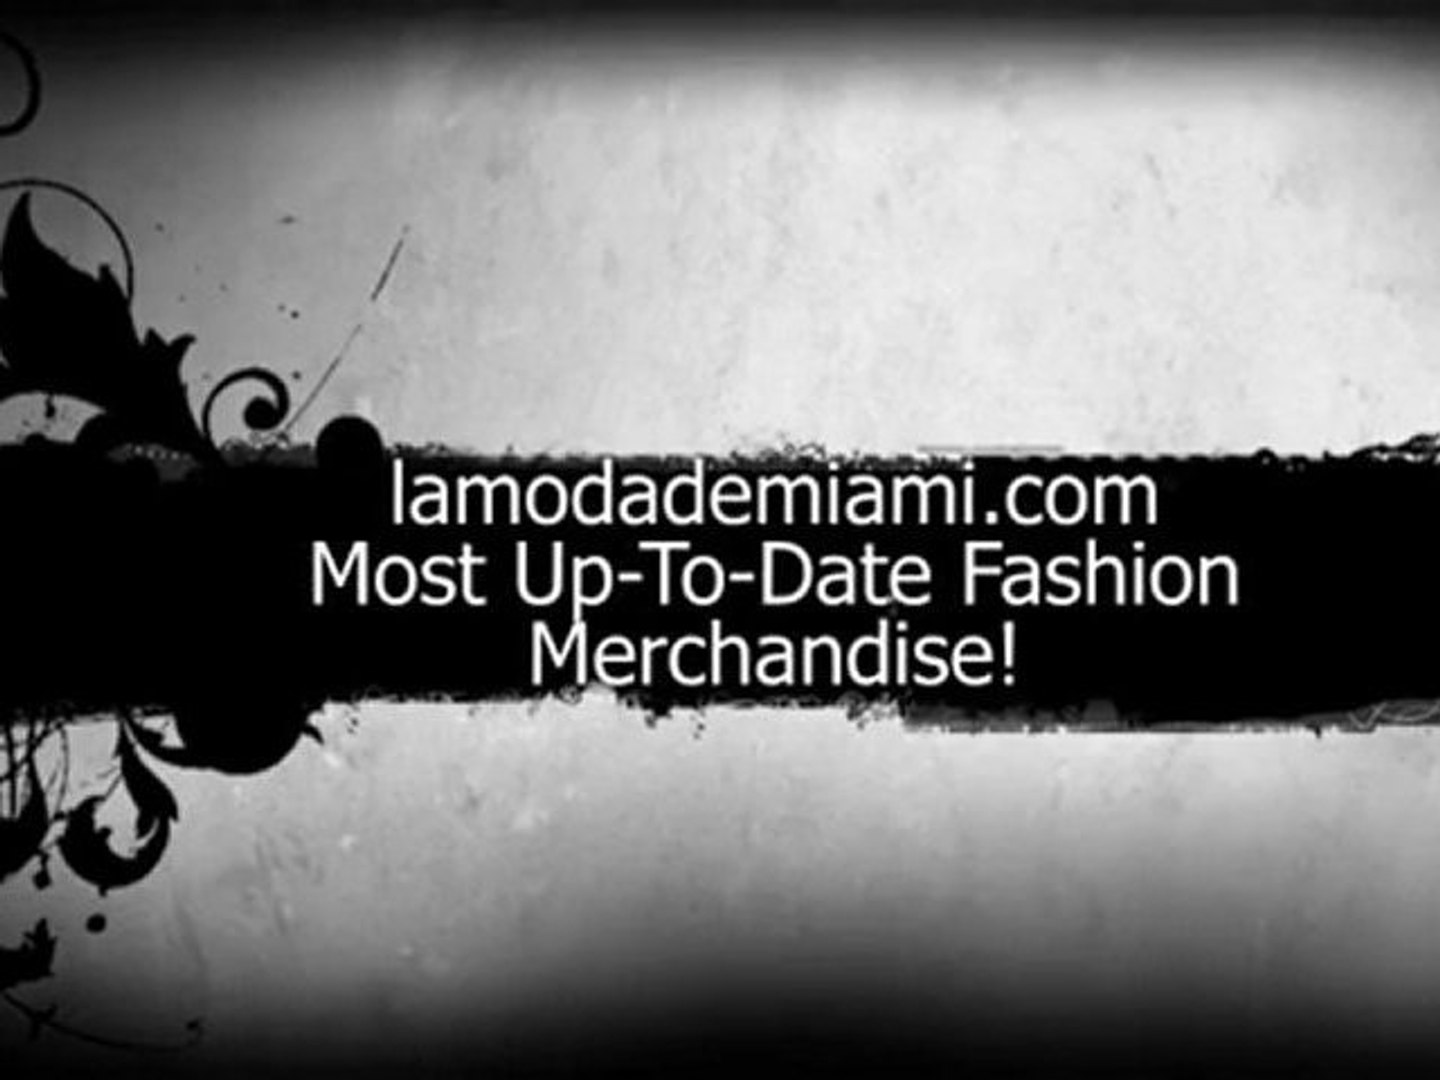 Miami fashion and weight loss tips; Latin fashion clothes and best diet site